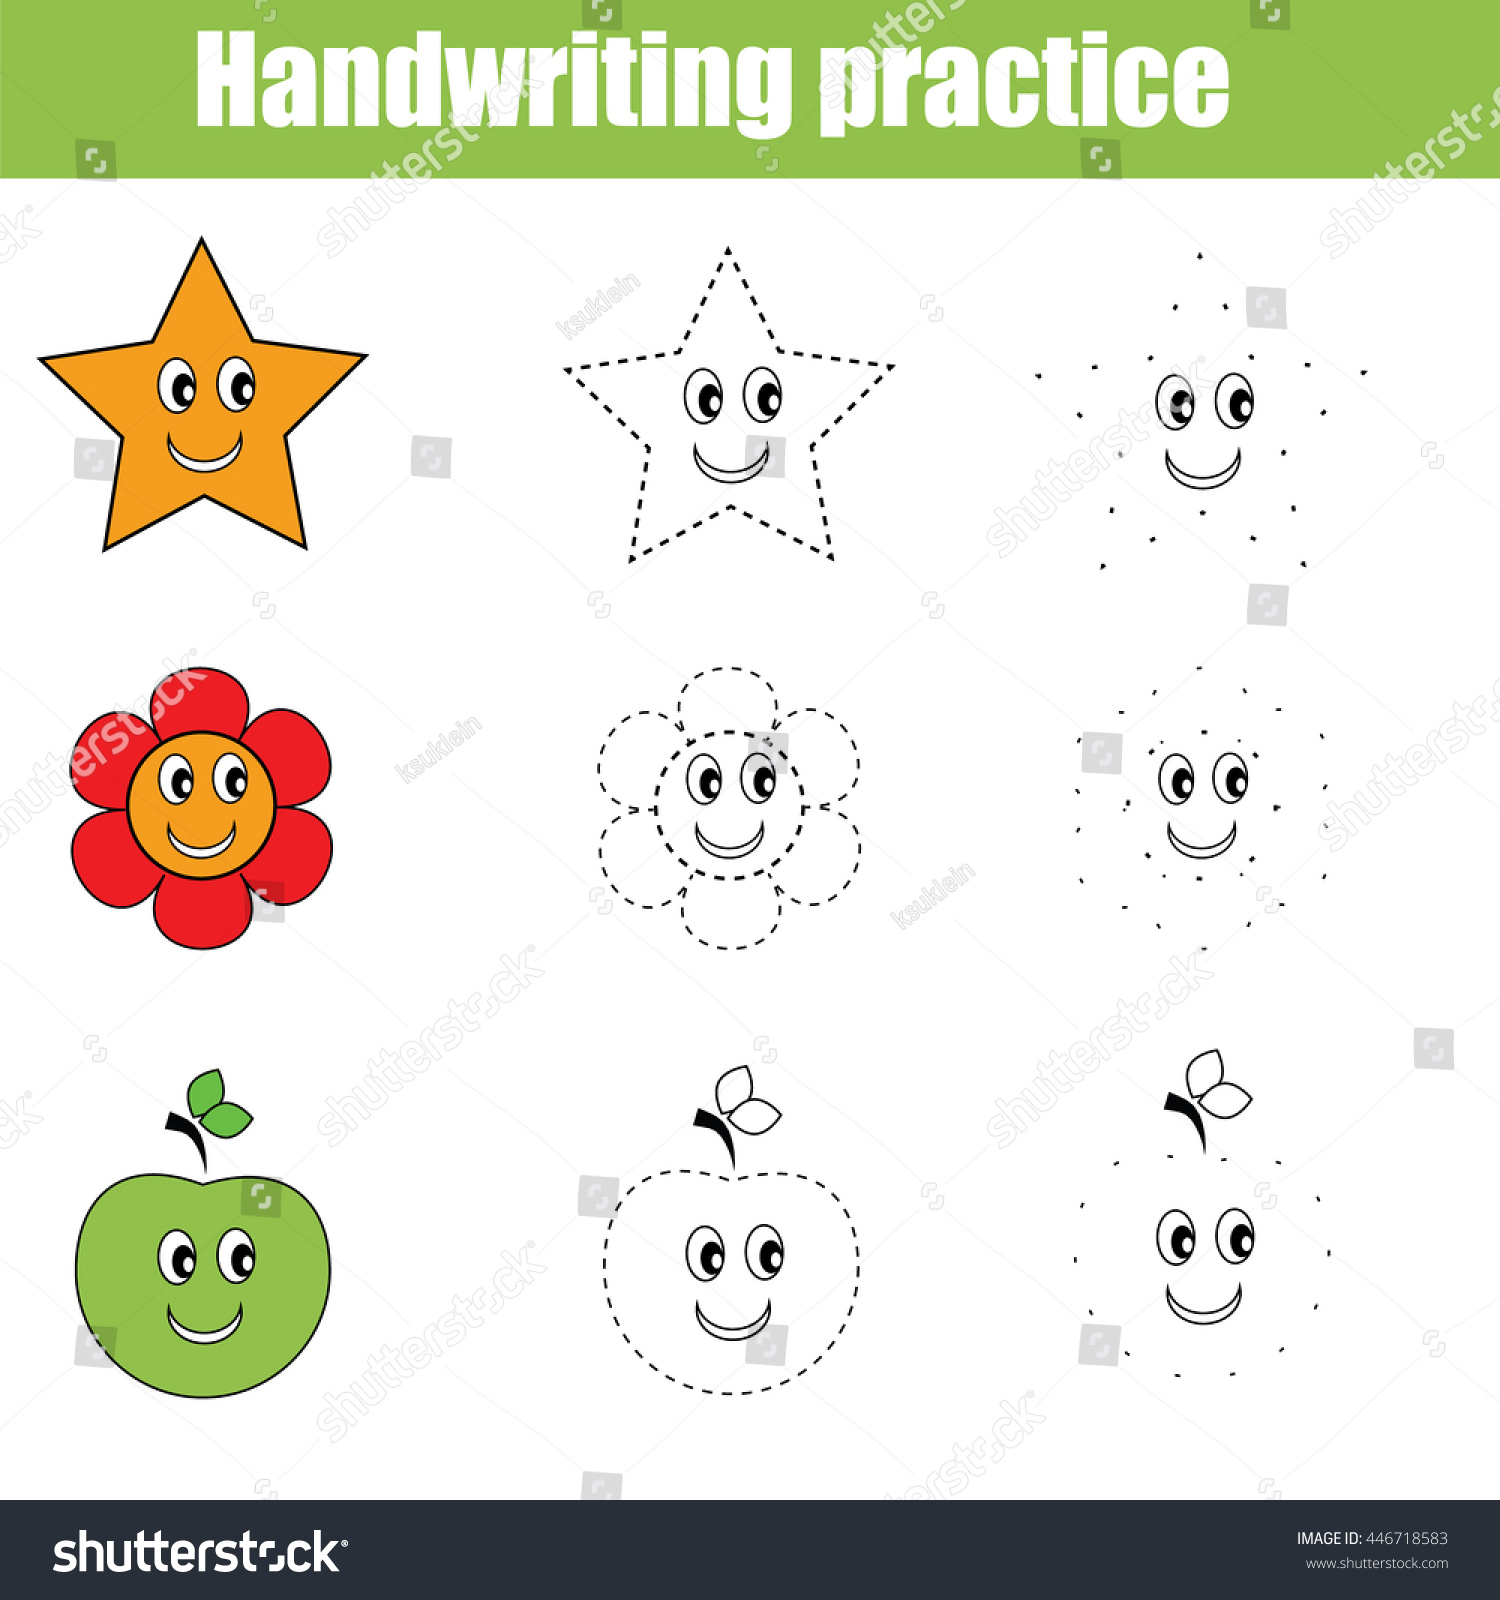 Worksheets Kindergarten Handwriting Worksheet Maker handwriting worksheet maker for kindergarten printables free mikyu kindergarten